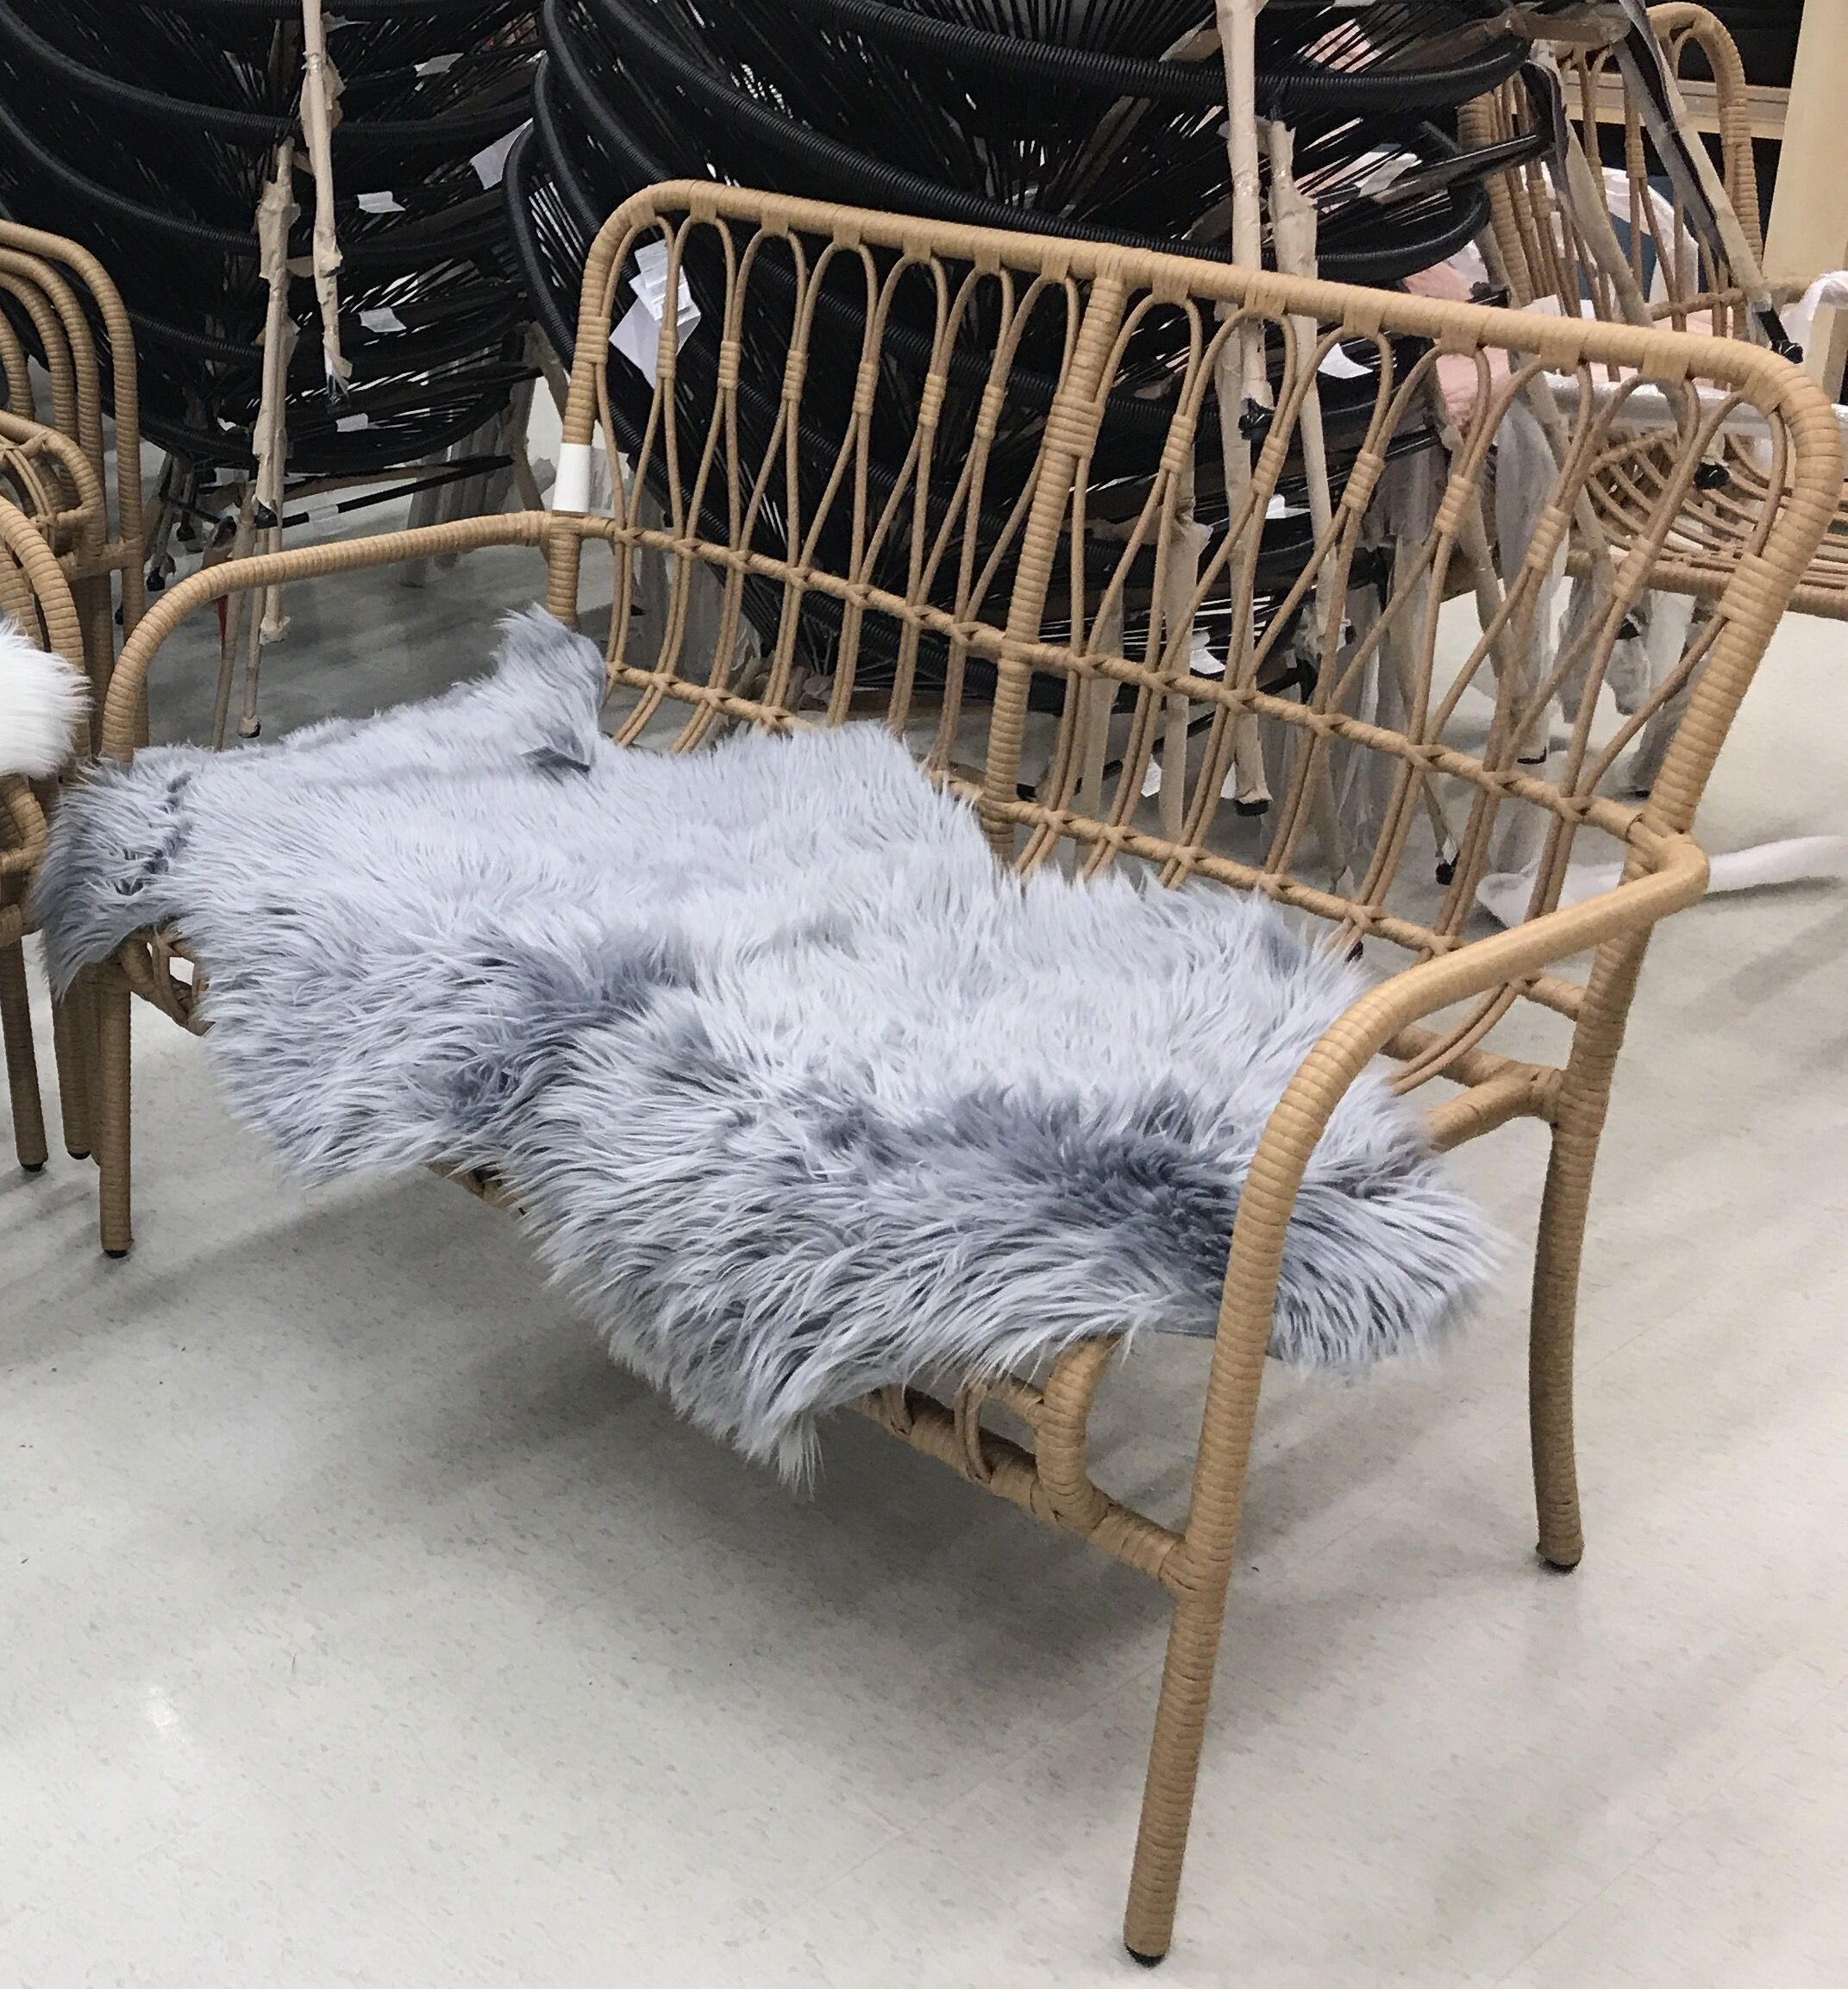 Kmart Cane 2 Seater Chair 79 Grey Throw 19 Cane